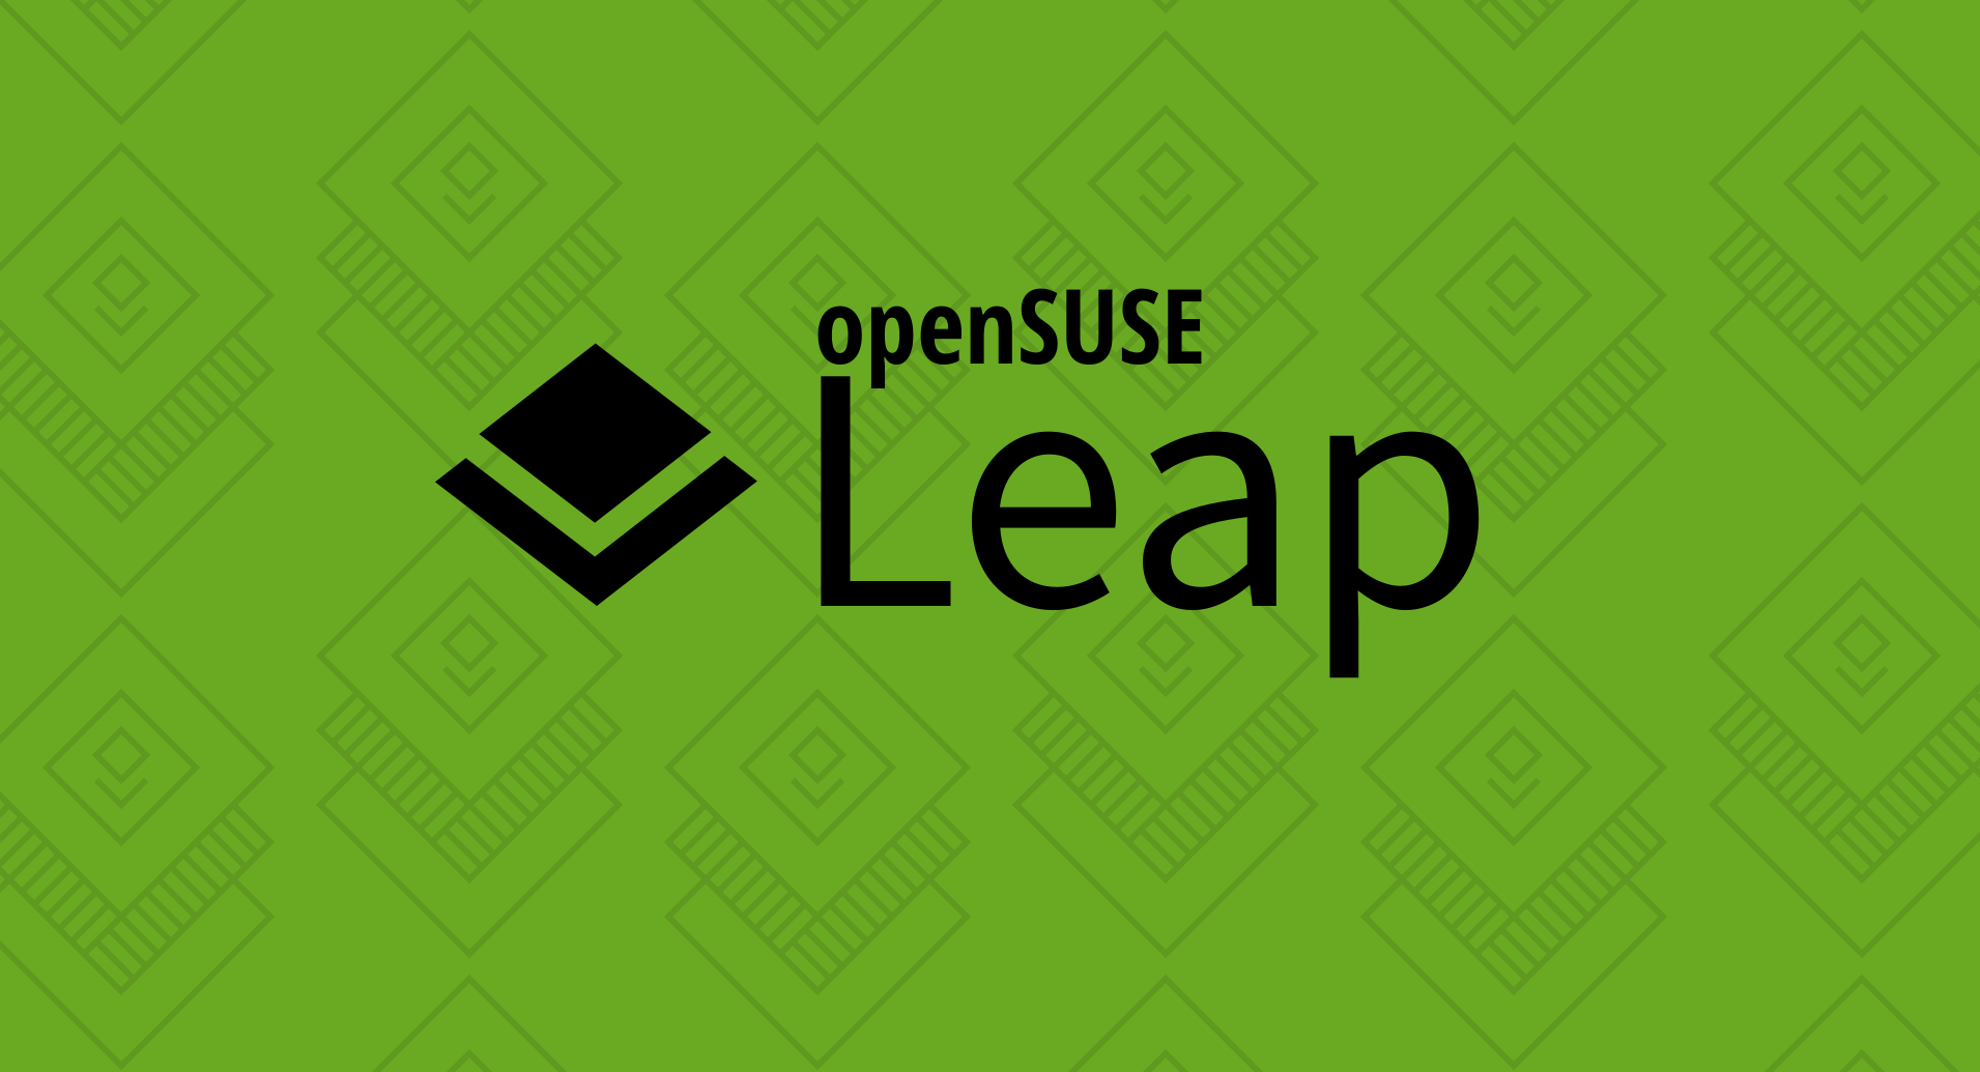 openSUSE Leap offers Predictability